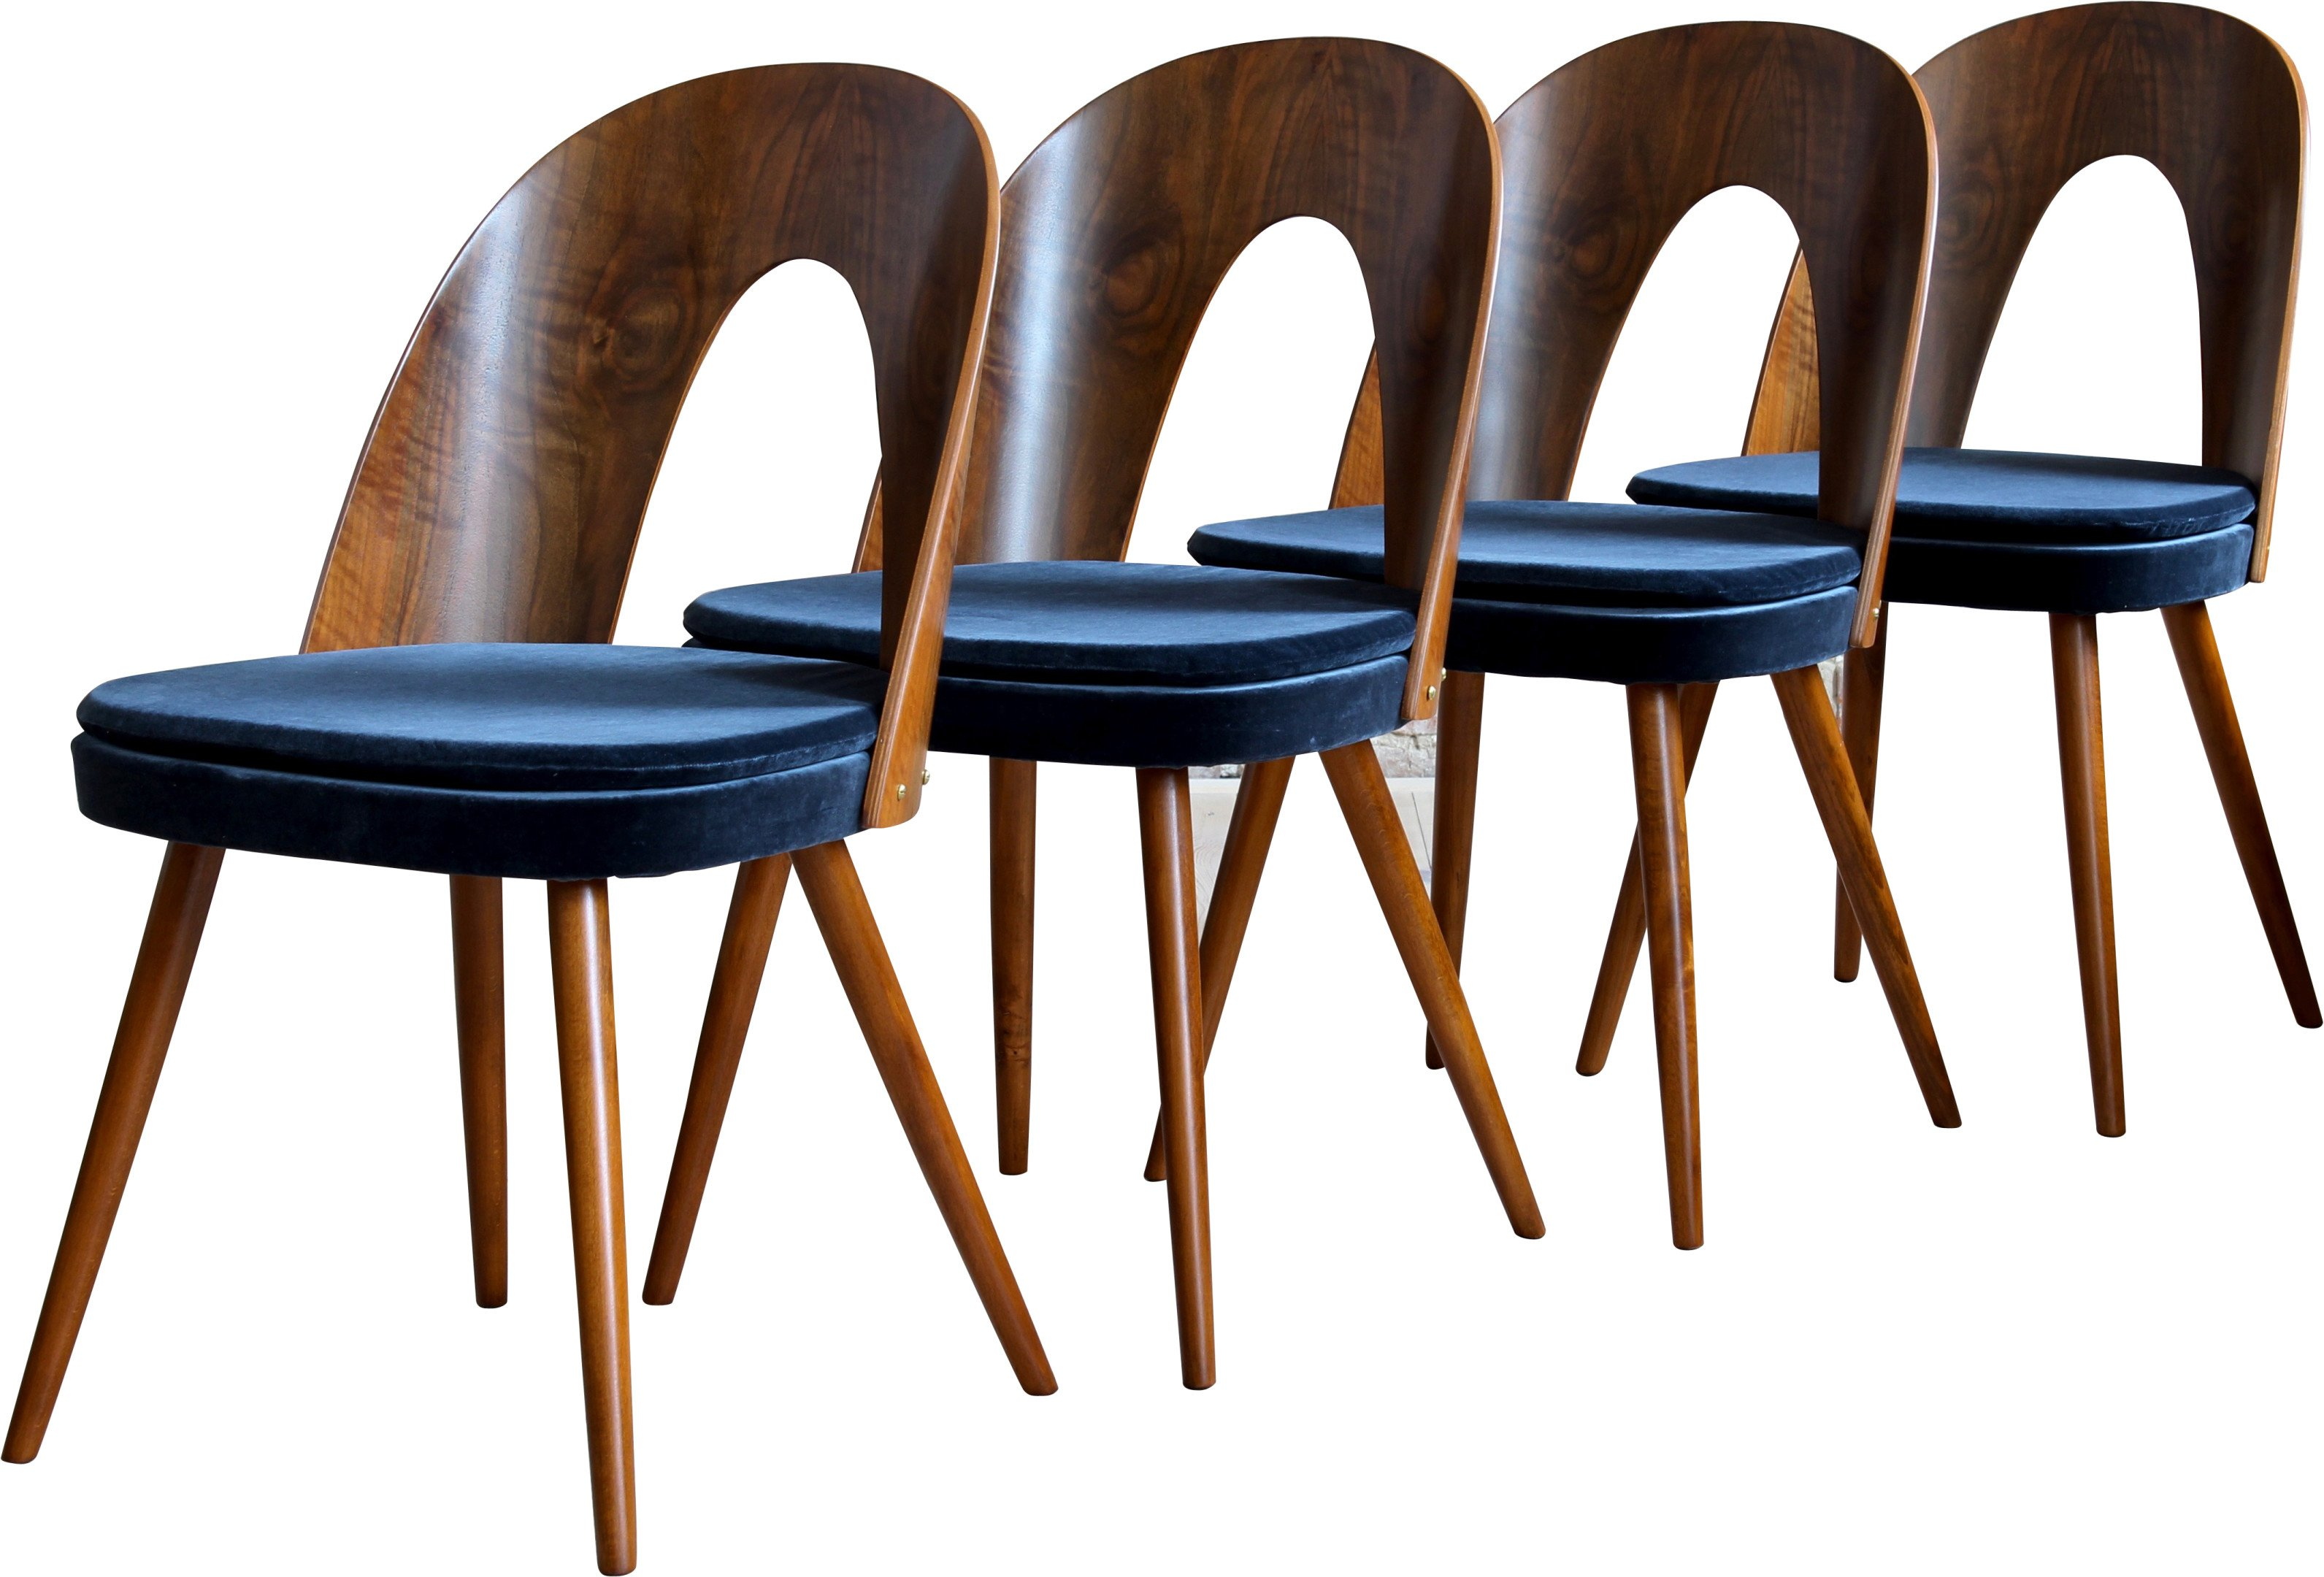 Set of Four Chairs by A. Suman for Tatra Nabytok, Czechoslovakia, 1960s